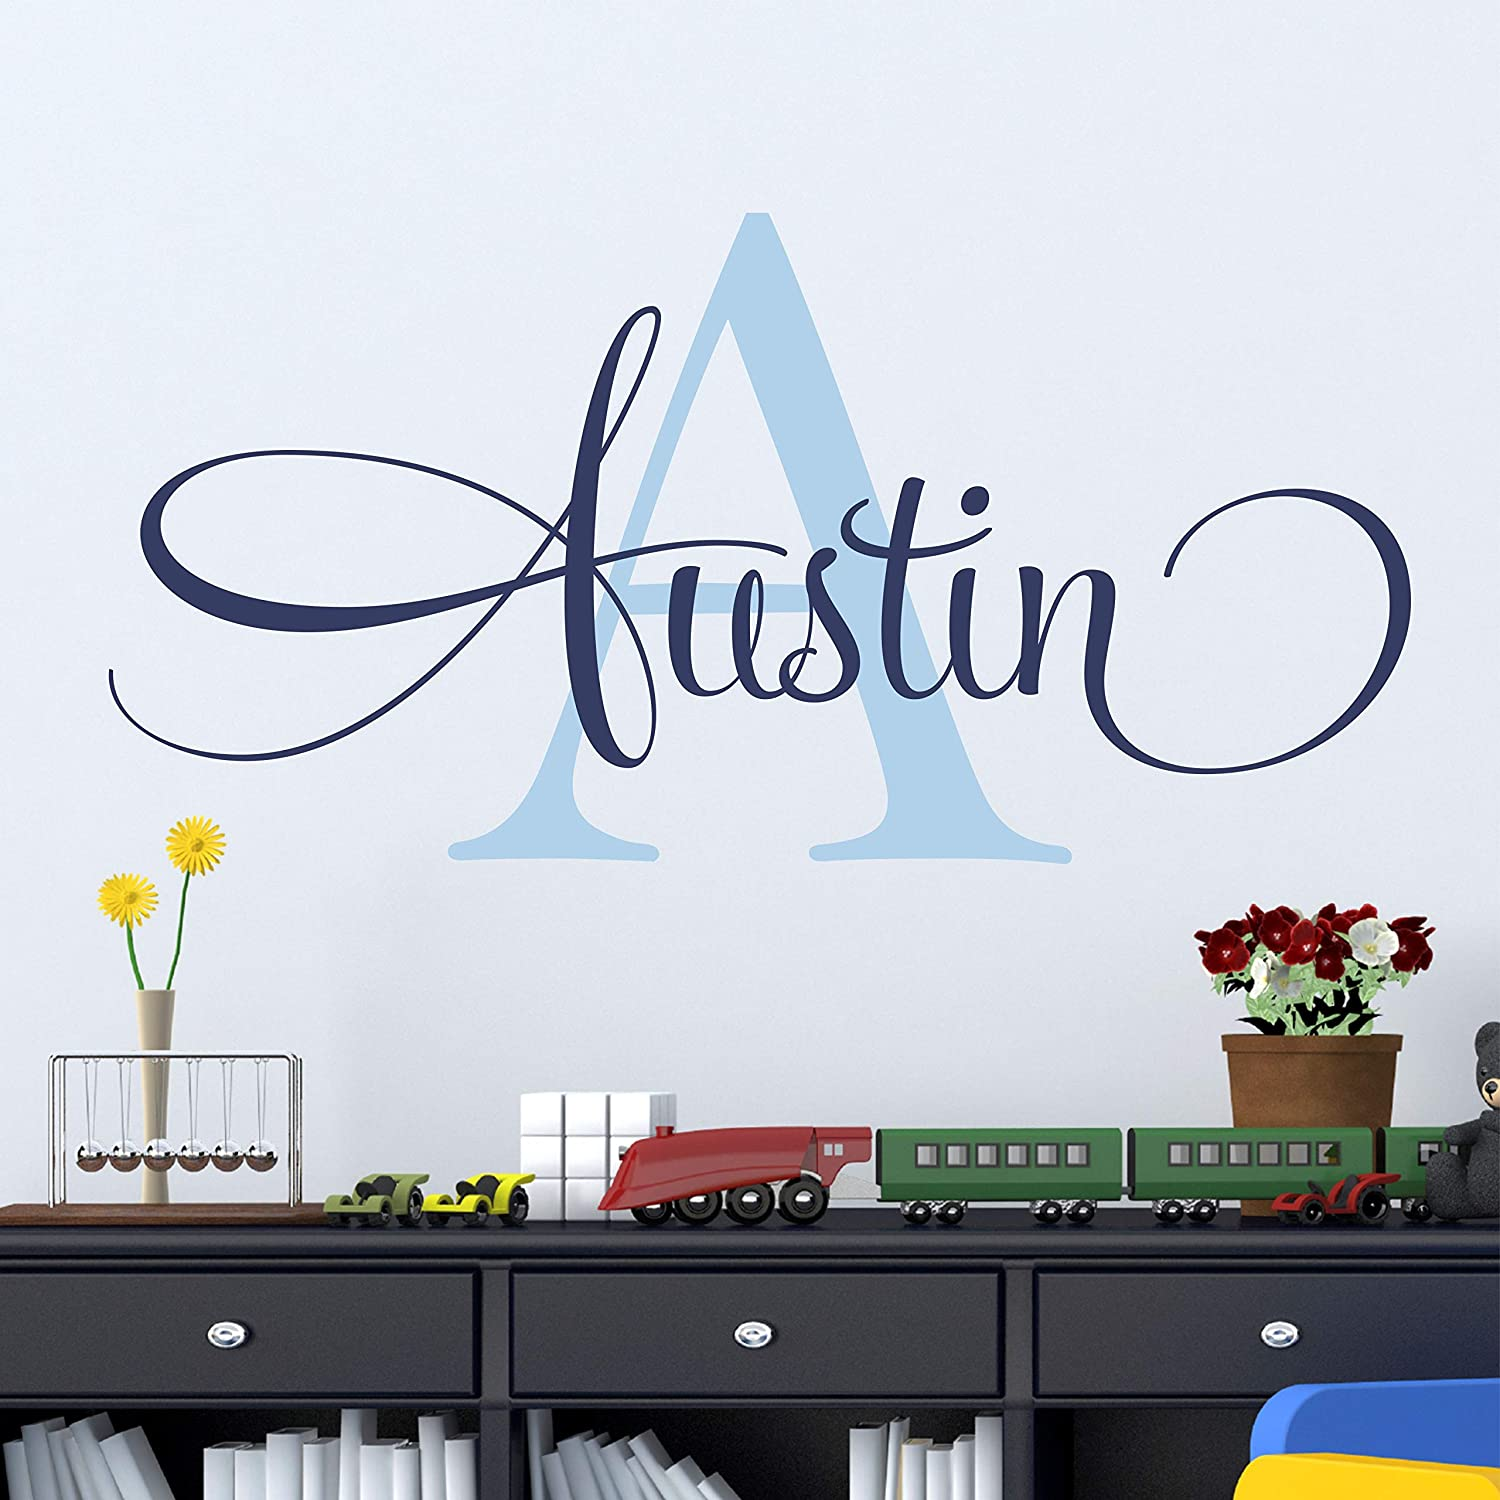 Personalized Name Wall Decal Nursery Decal Baby Monogram Vinyl Wall Art Name Wall Decal Sticker Custom Name Wall Decal Girls Room Boys Room